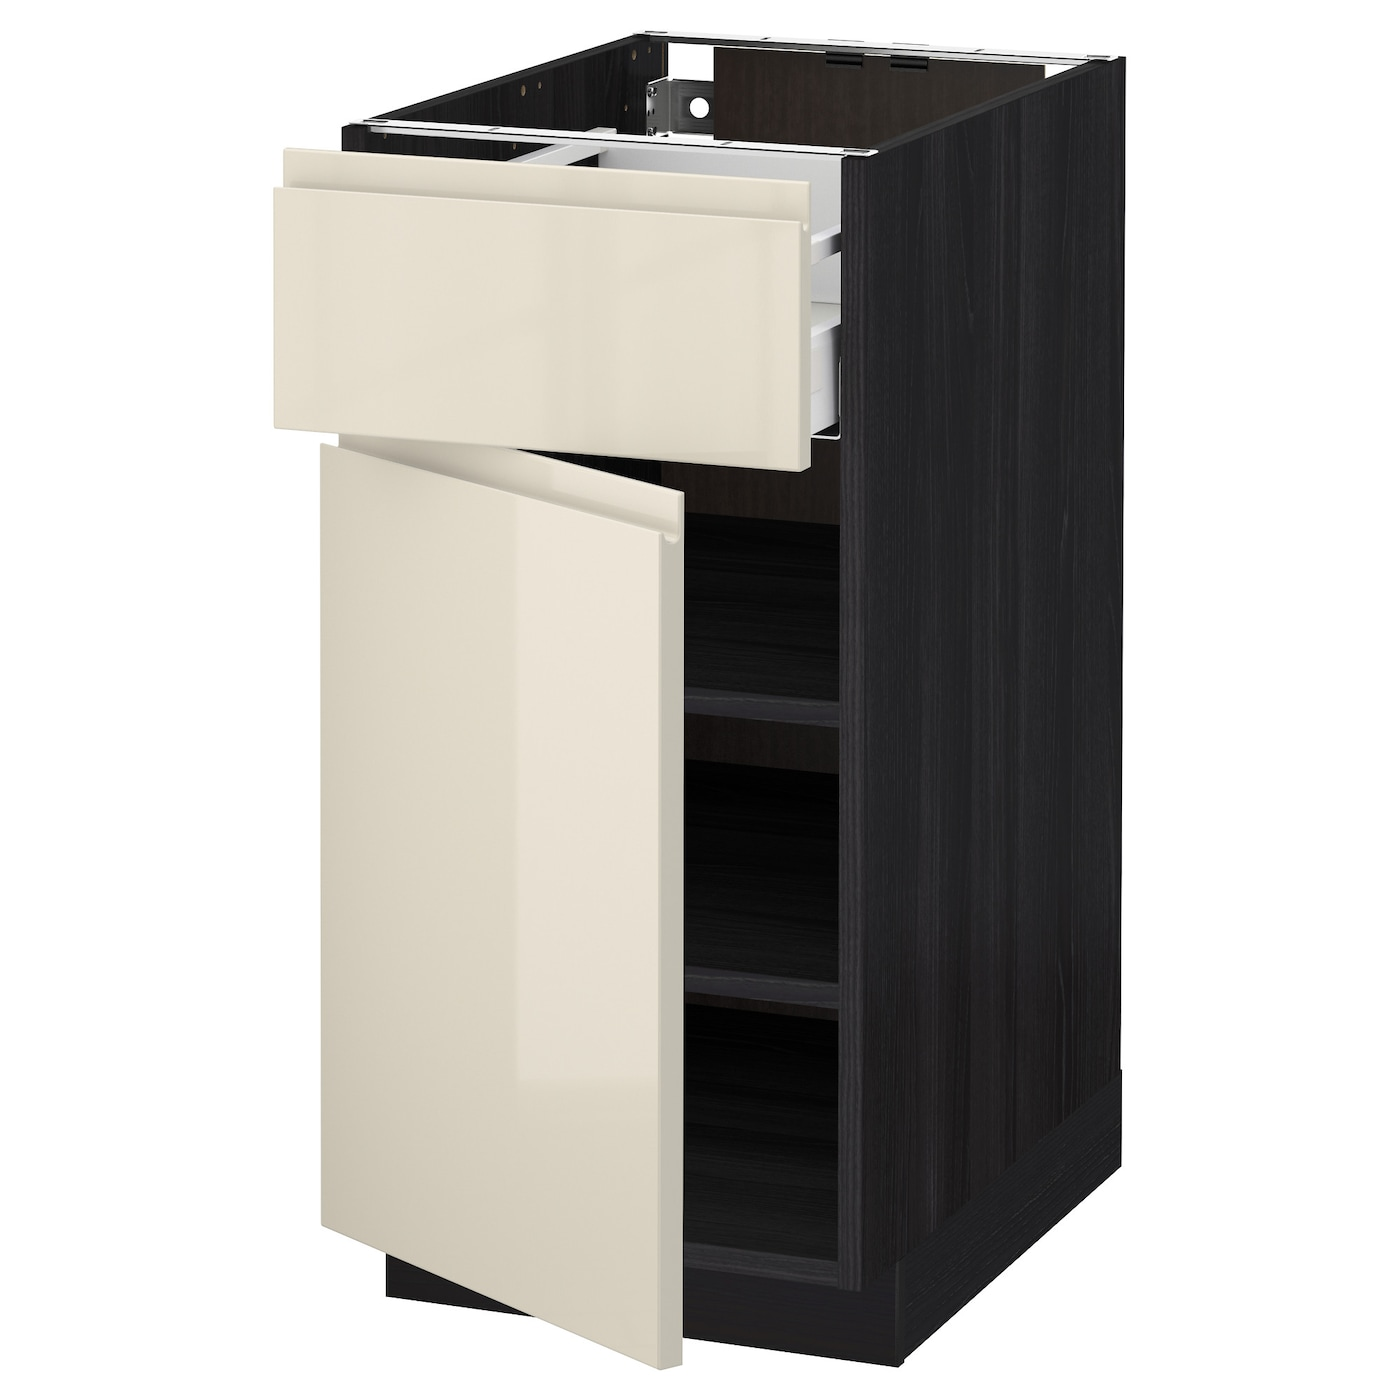 Metod Maximera Base Cabinet With Drawer Door Black Voxtorp High Gloss Light Beige 40x60 Cm Ikea